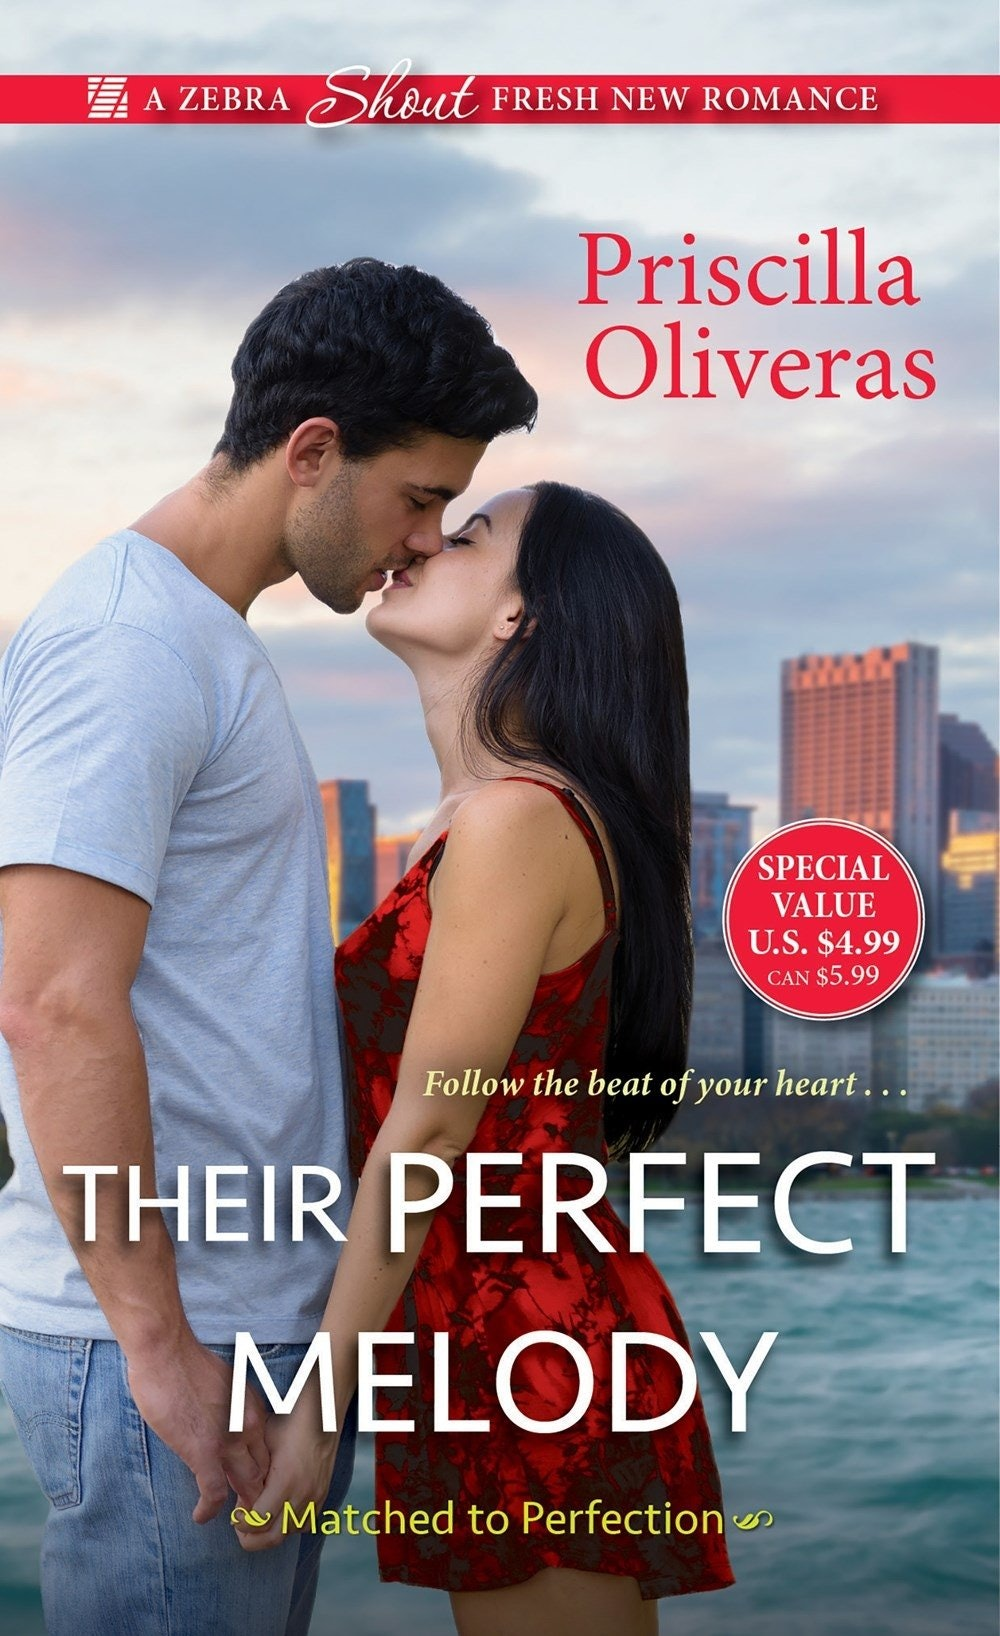 10 New Romance Novels Out In Fall 2018 That Make The Perfect